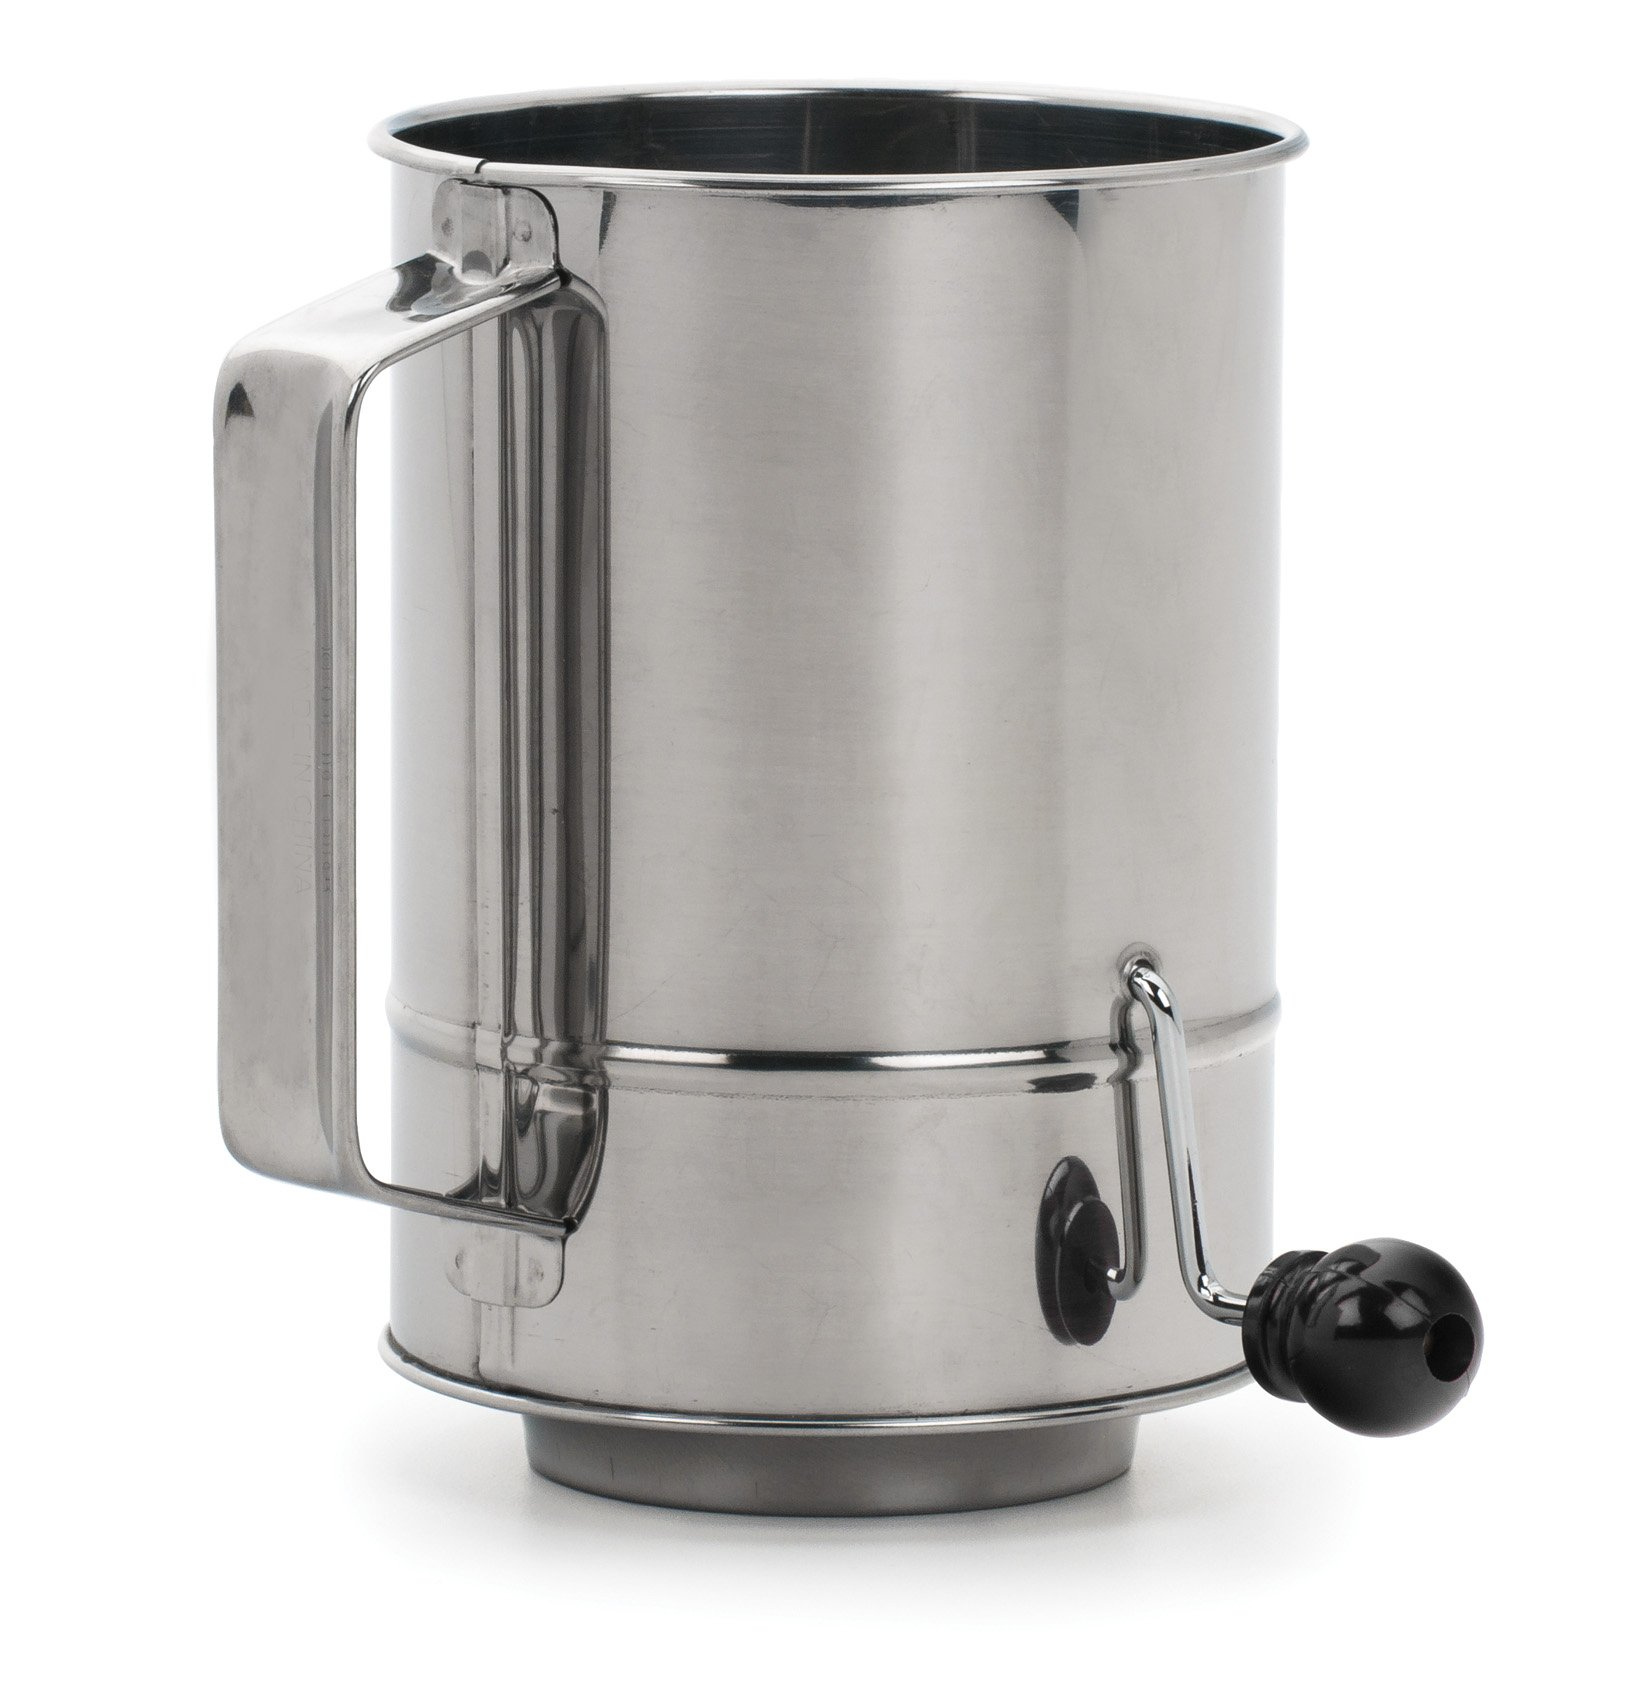 RSVP SIFT-5CR Endurance Stainless Steel Crank Style Flour Sifter, 5 Cup